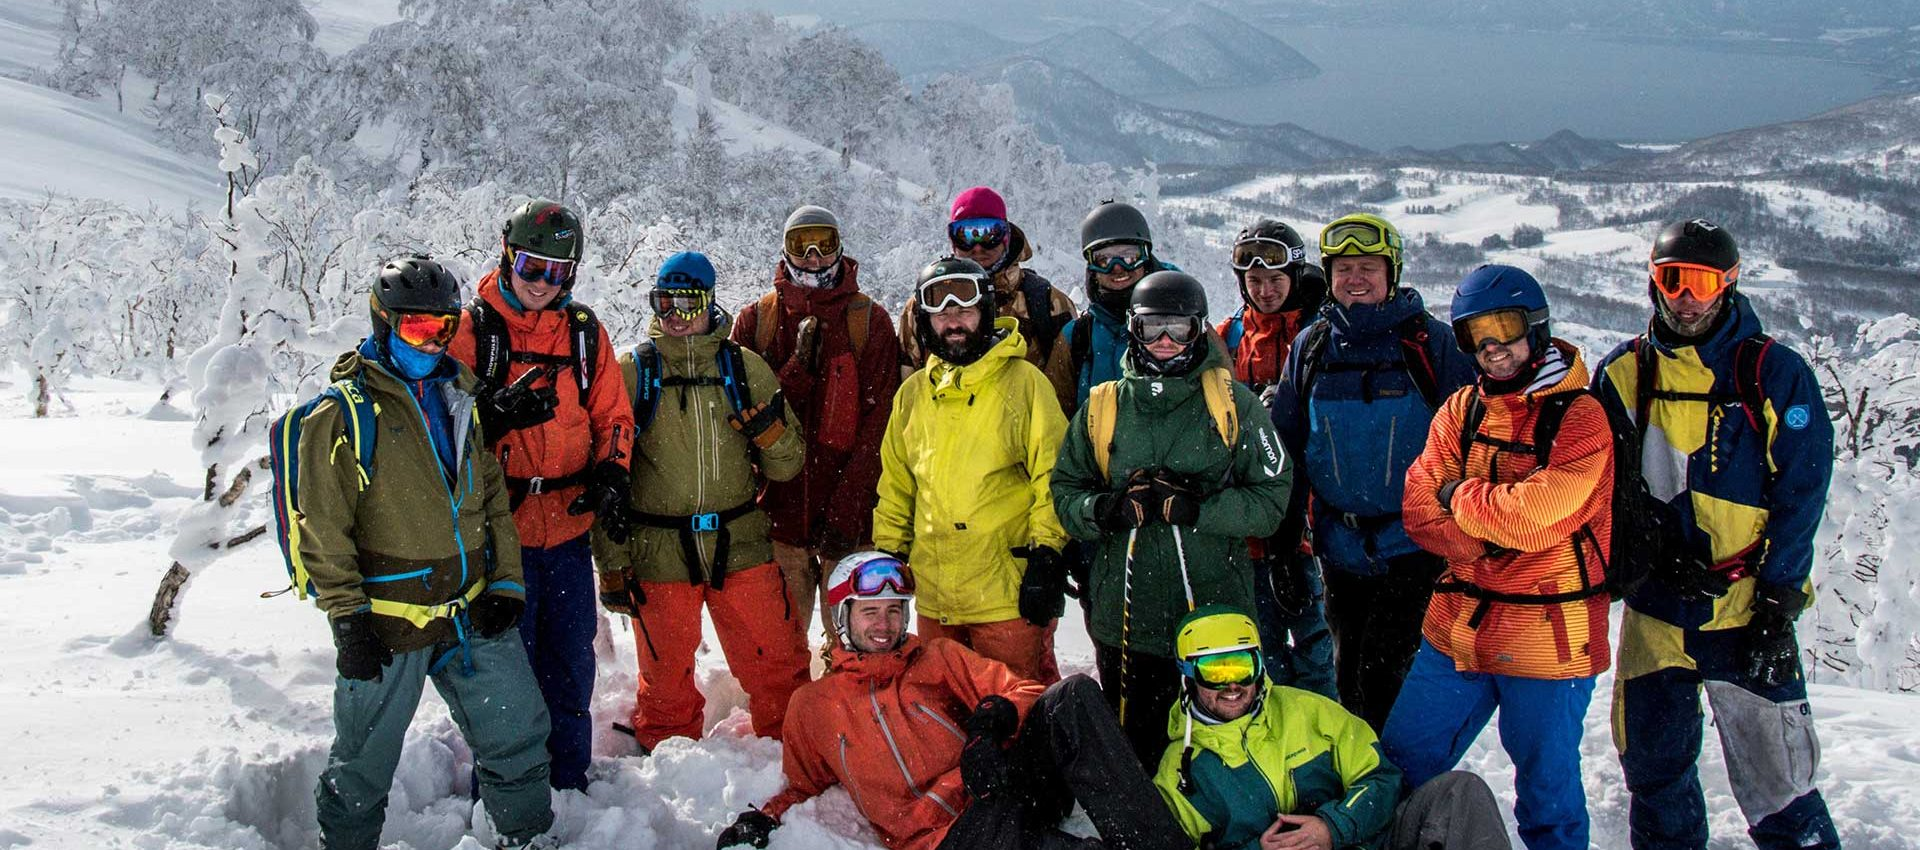 Freeriding and great adventures always bring together a great group of people.